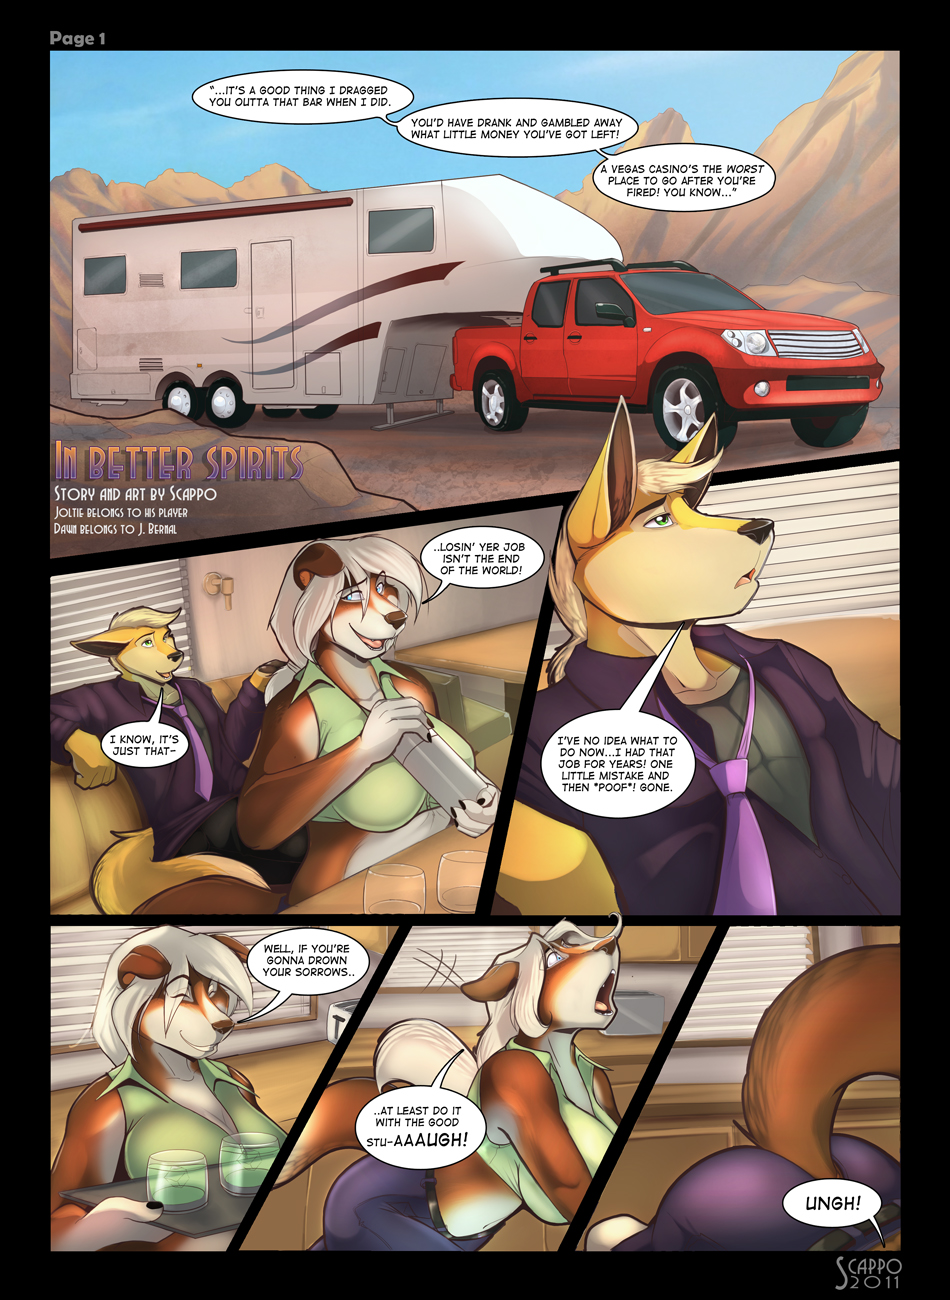 IBS_Page 1